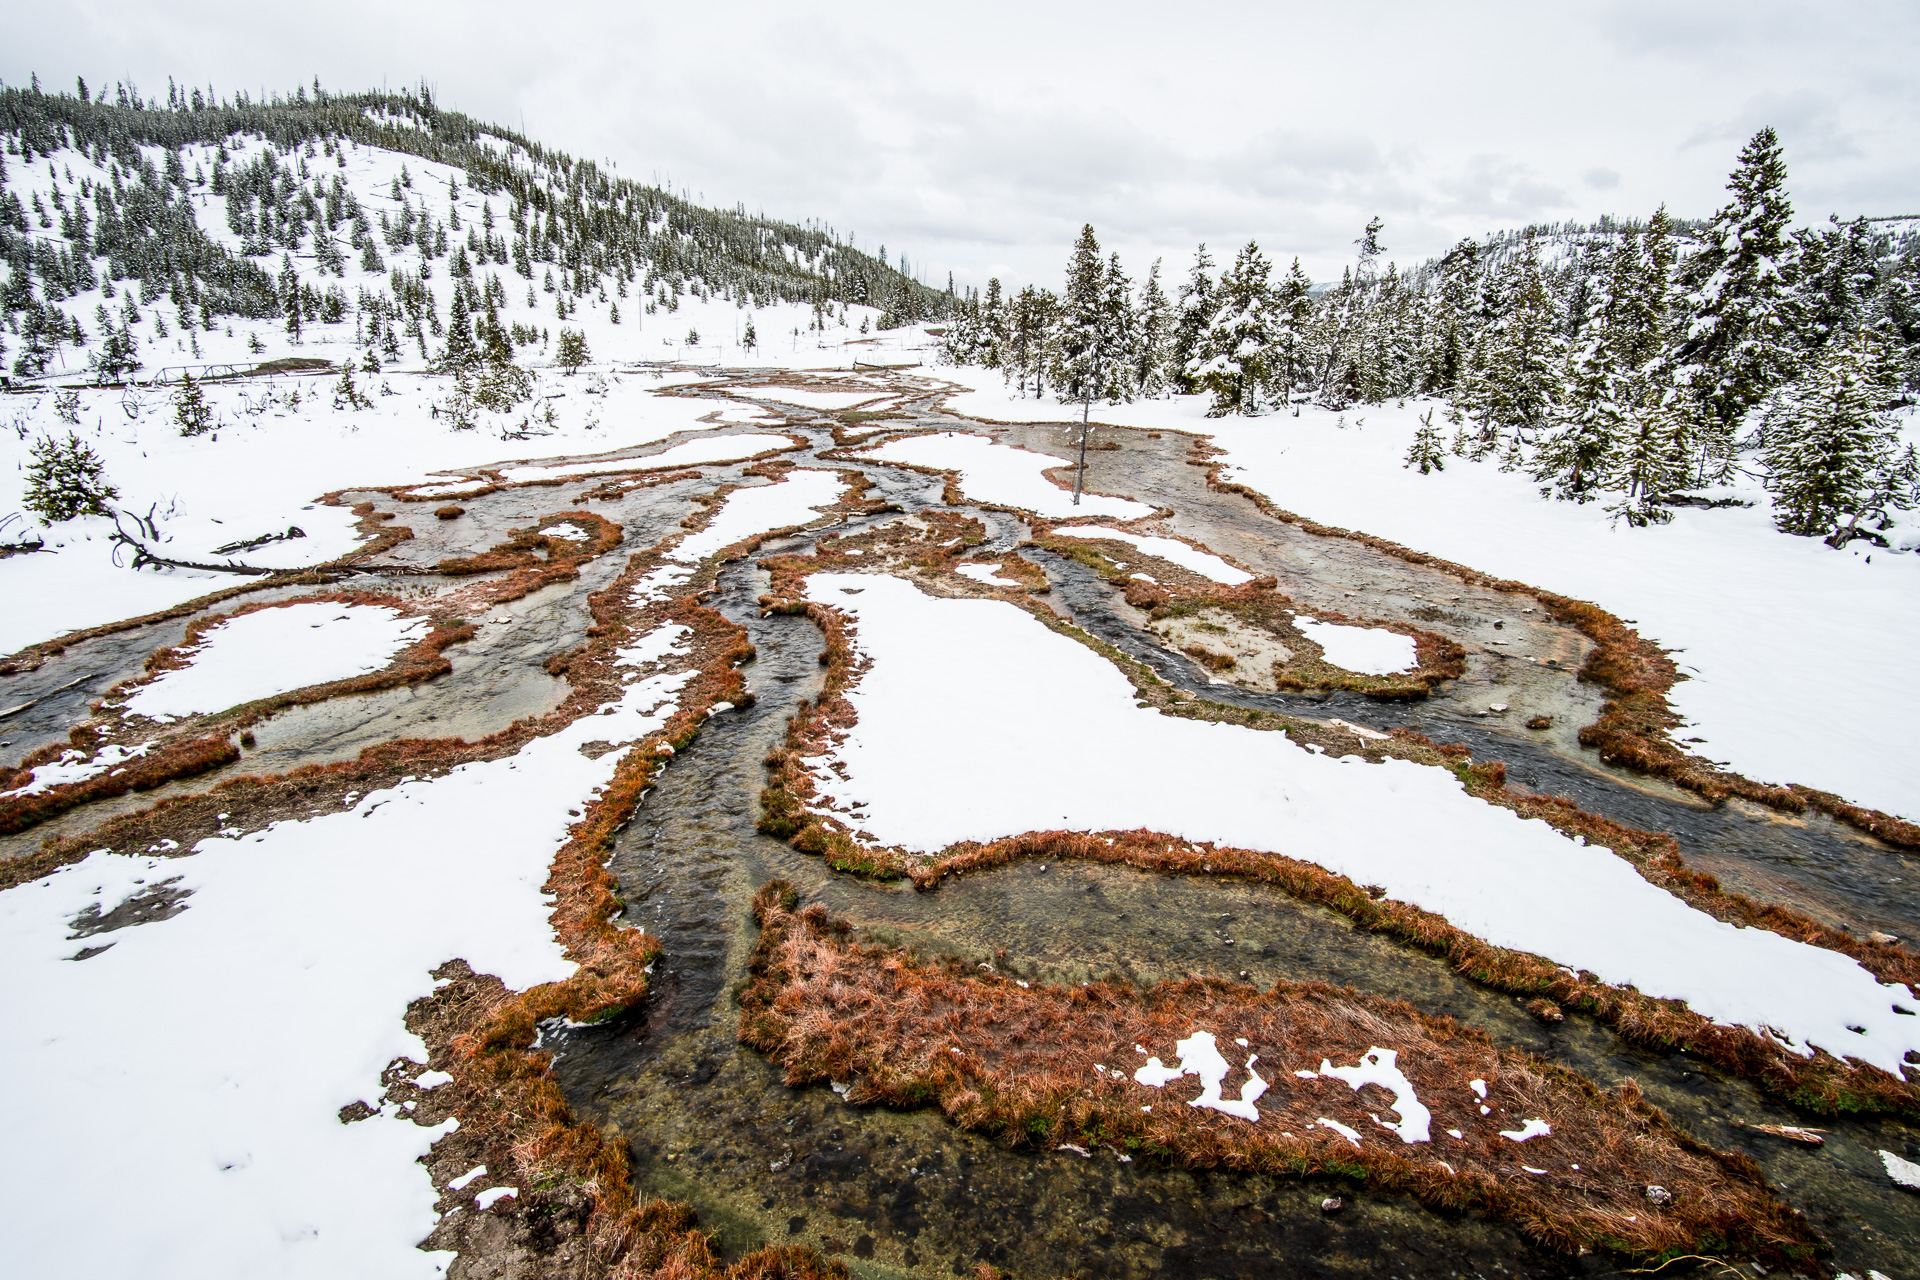 Stream snow red sedges Yellowstone National Park WY -05614